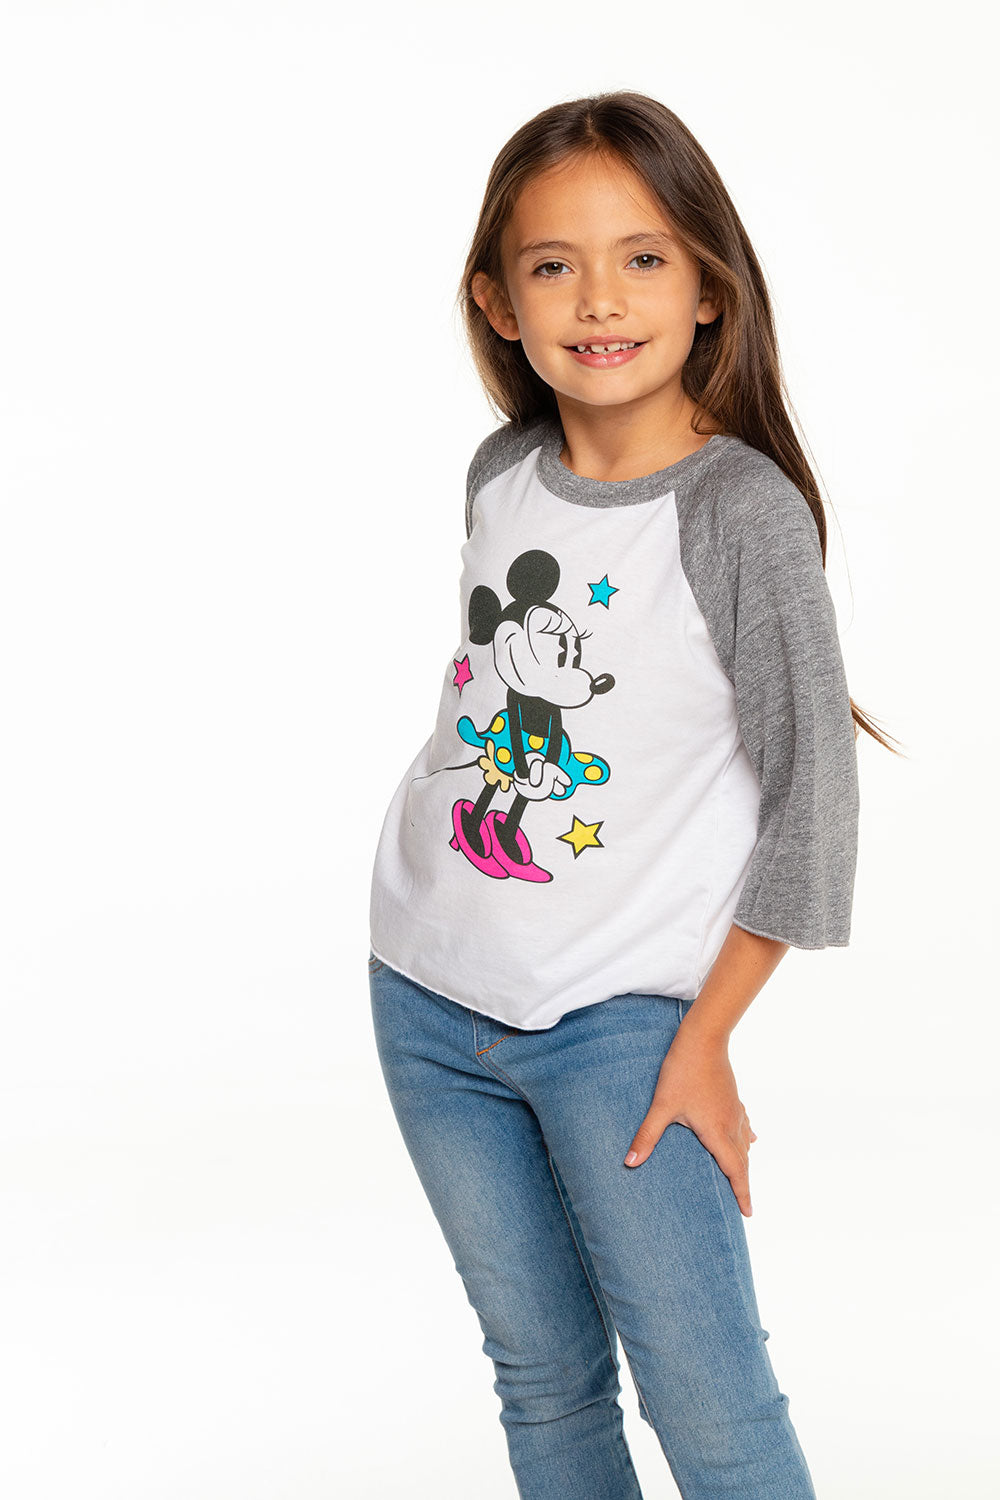 Disney's Minnie Mouse - Classic Minnie Baseball Tee GIRLS chaserbrand4.myshopify.com